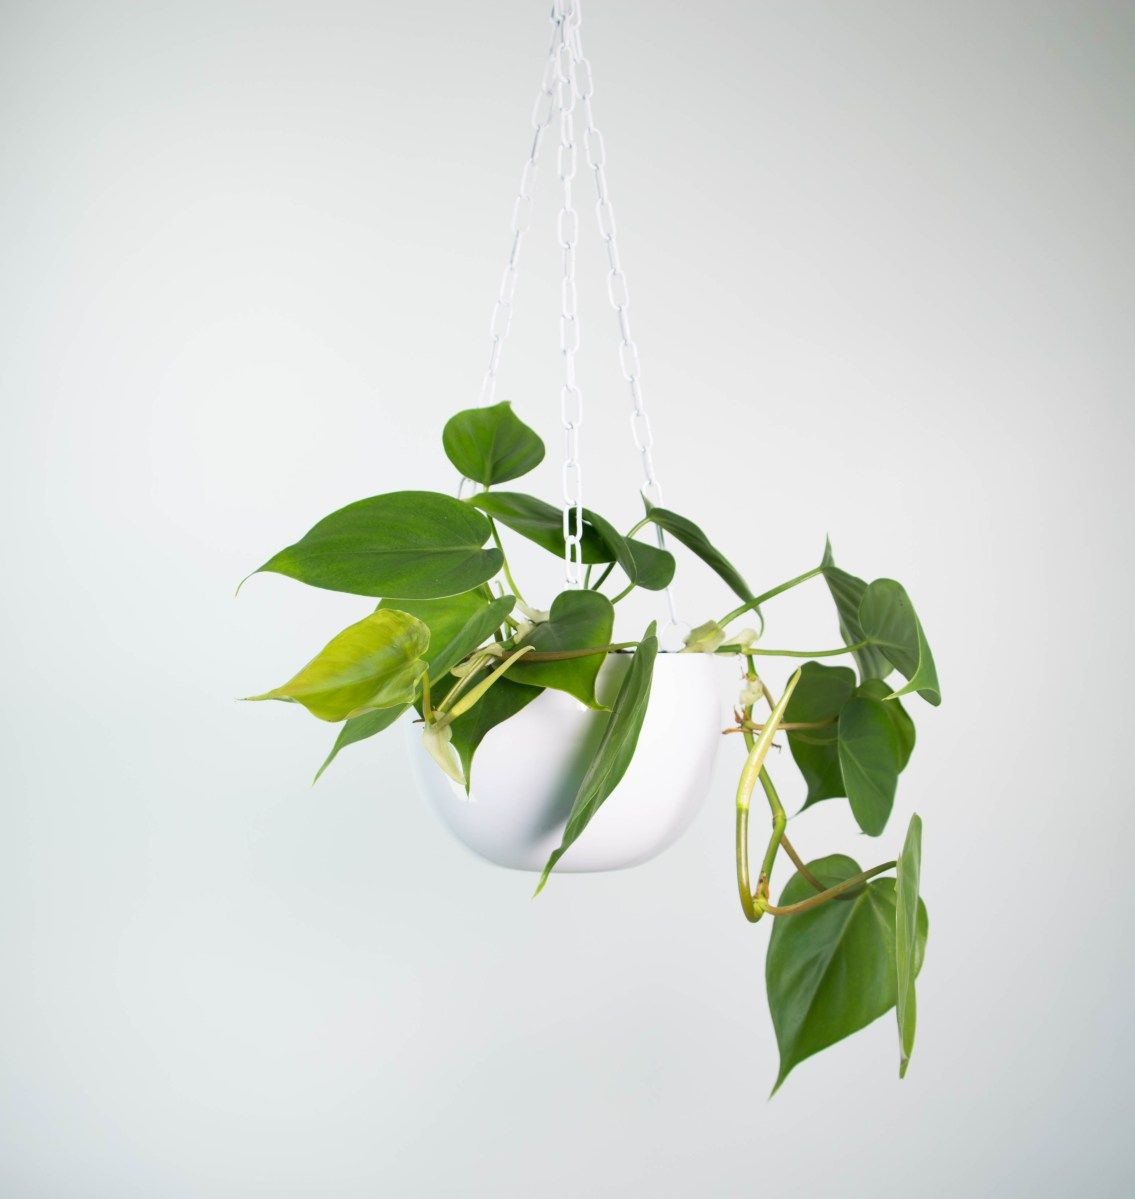 Sweetheart Plant in Ceramic Hanging Pot | Cool indoor plants ...